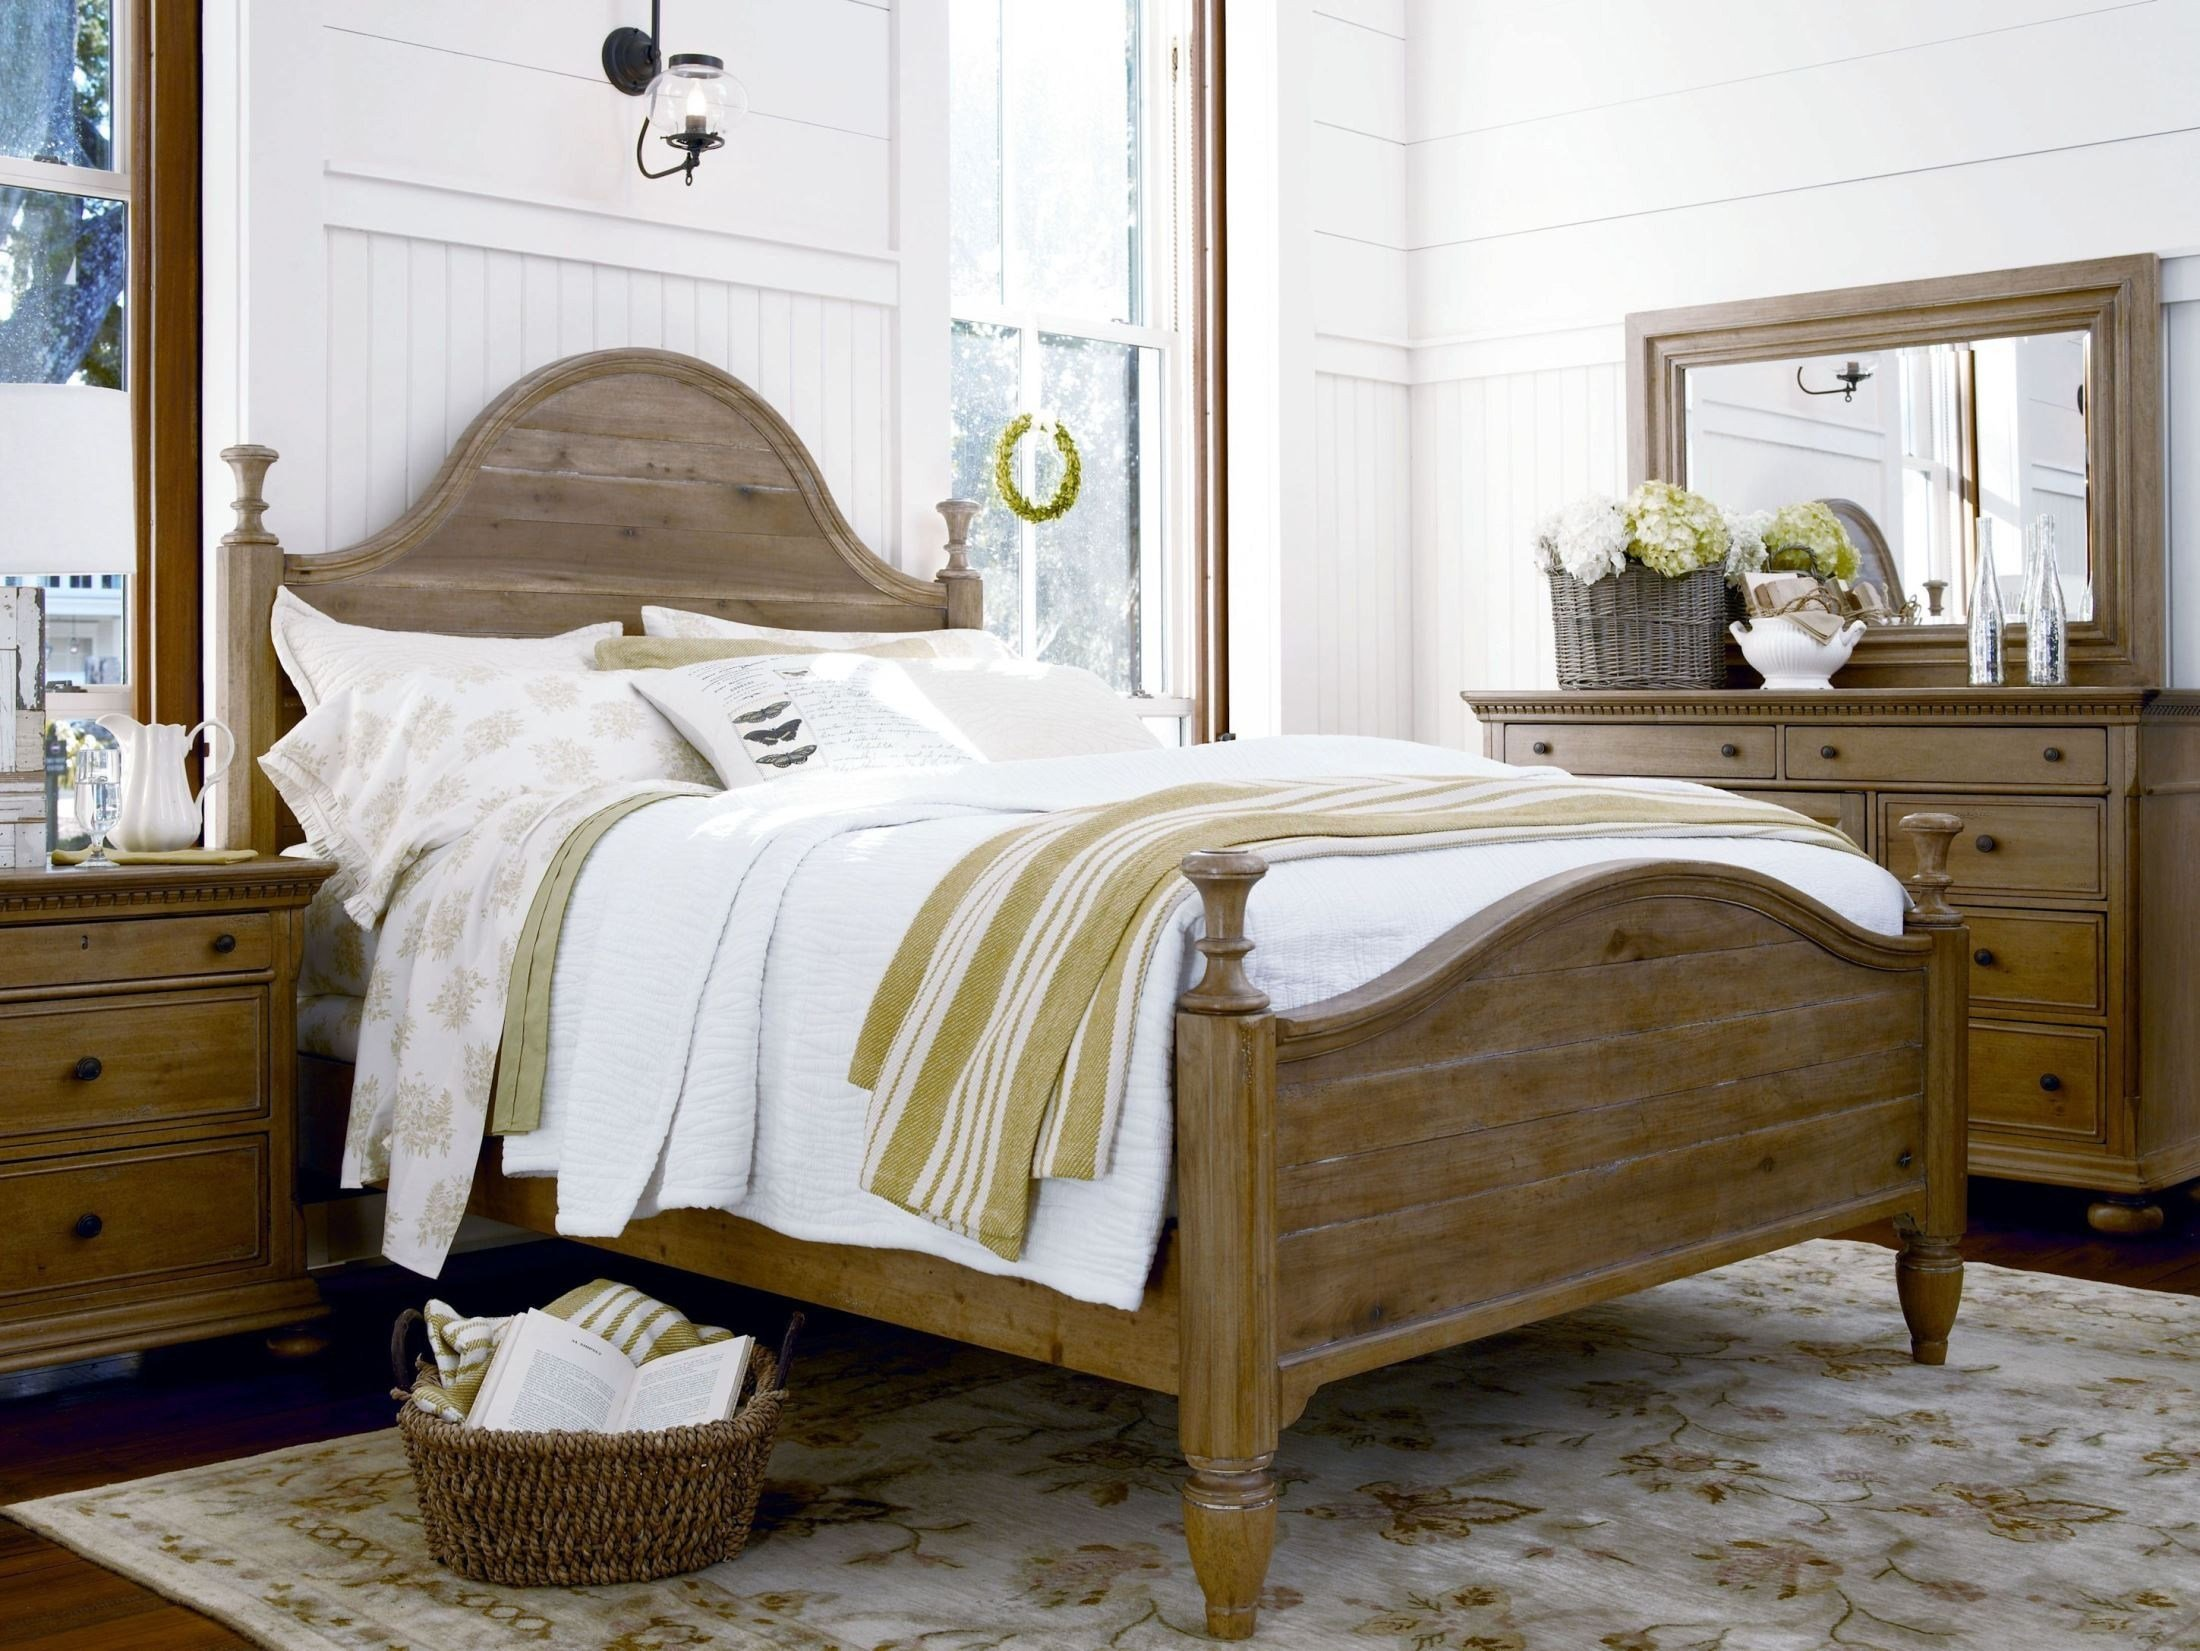 Best Down Home Oatmeal Bedroom Set From Paula Deen 192280B With Pictures